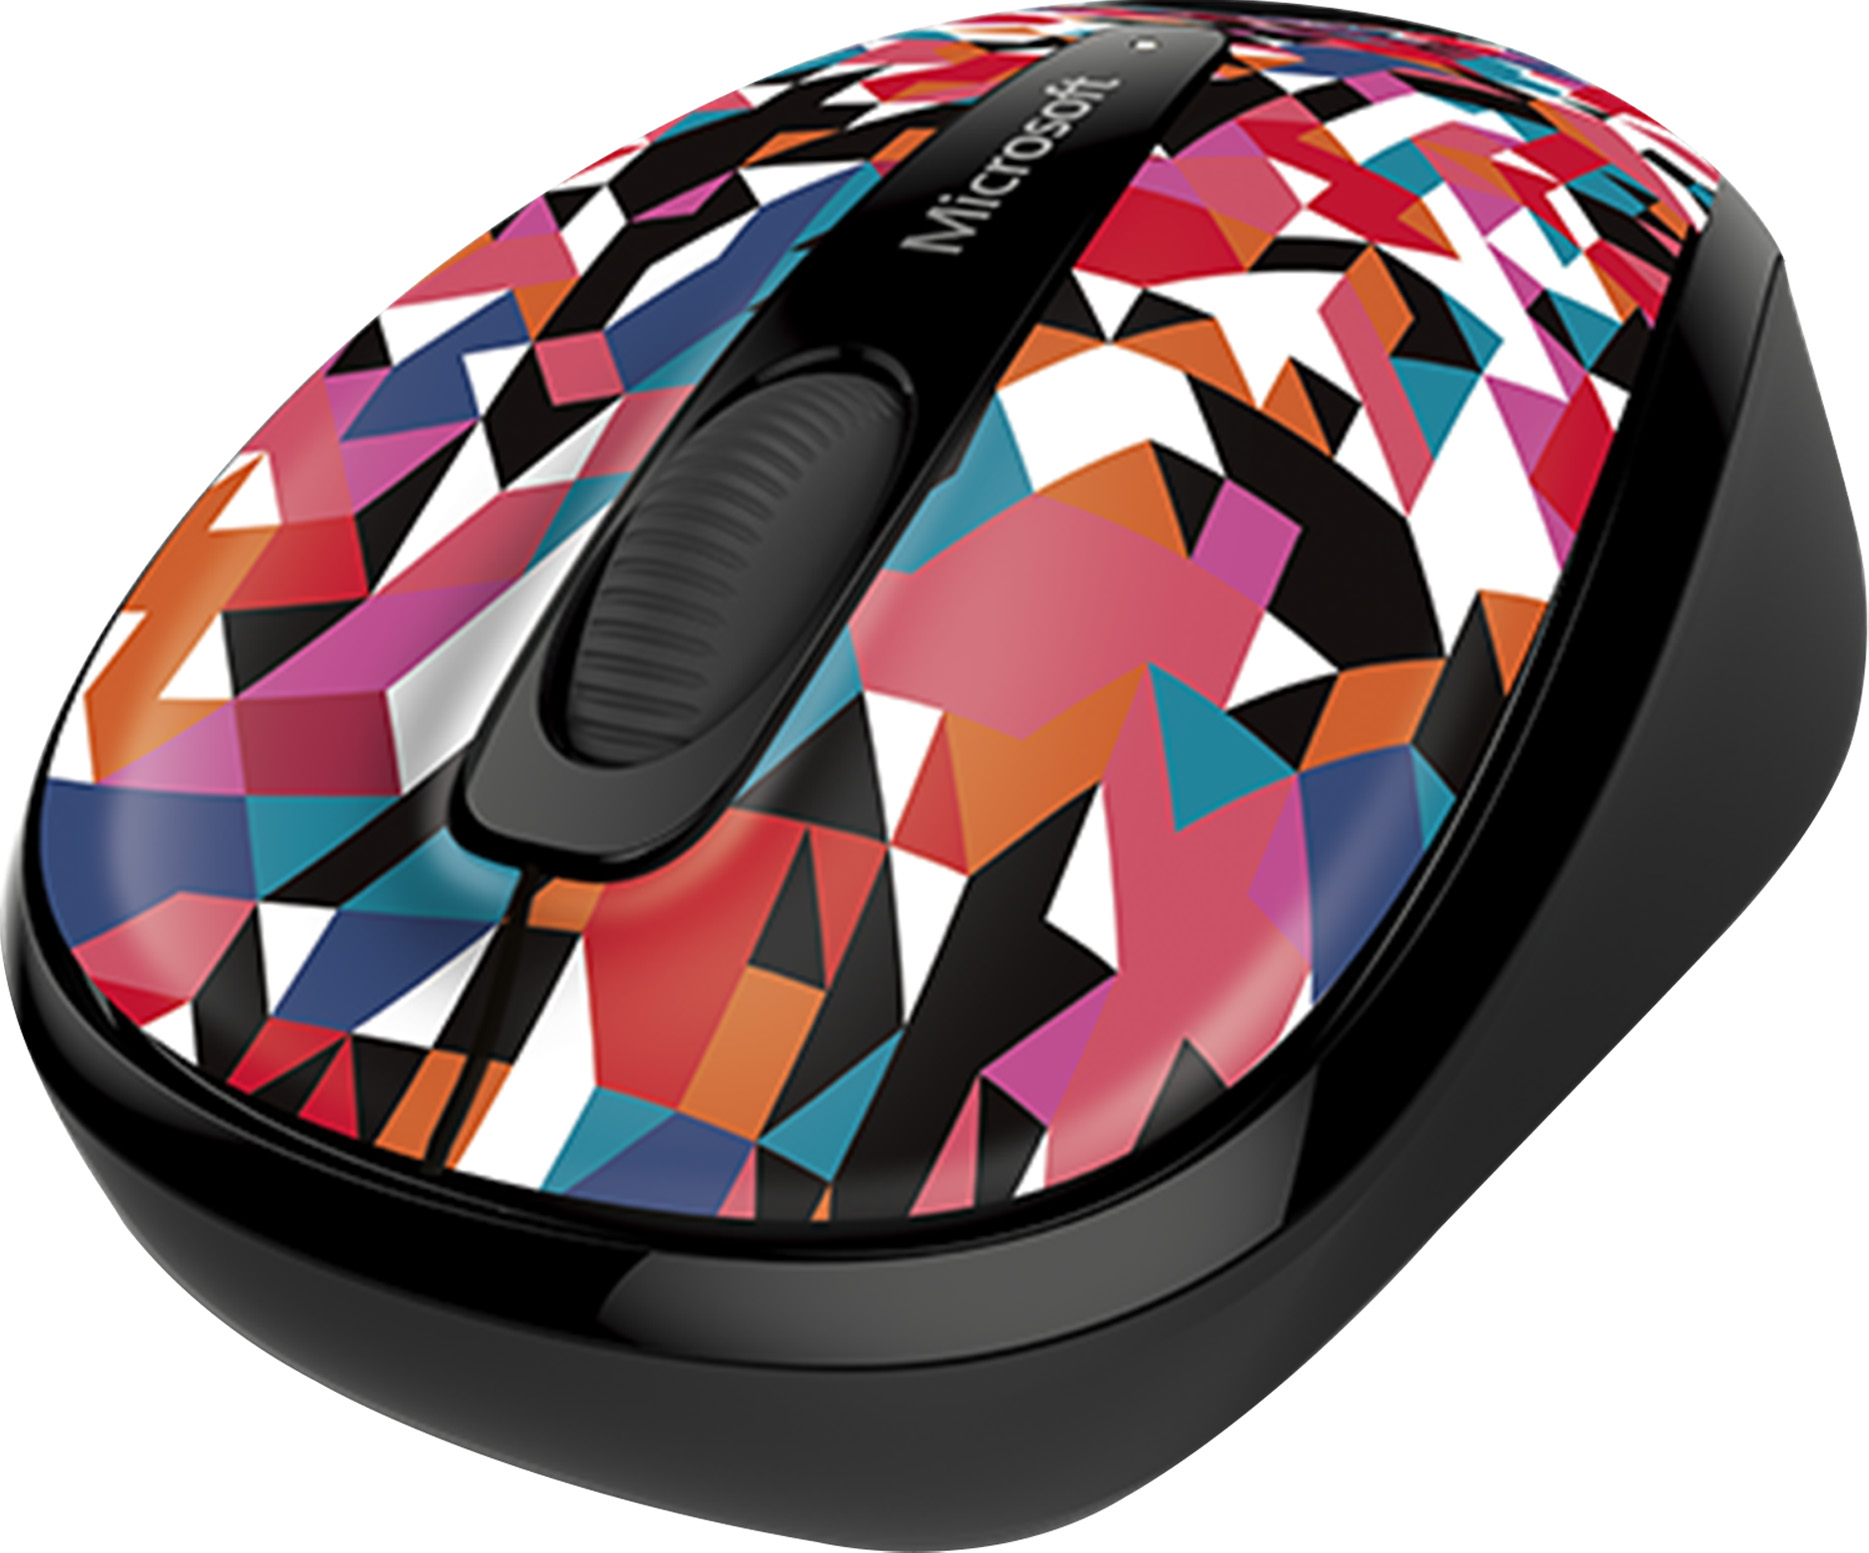 wireless-mobile-mouse-3500-geometric